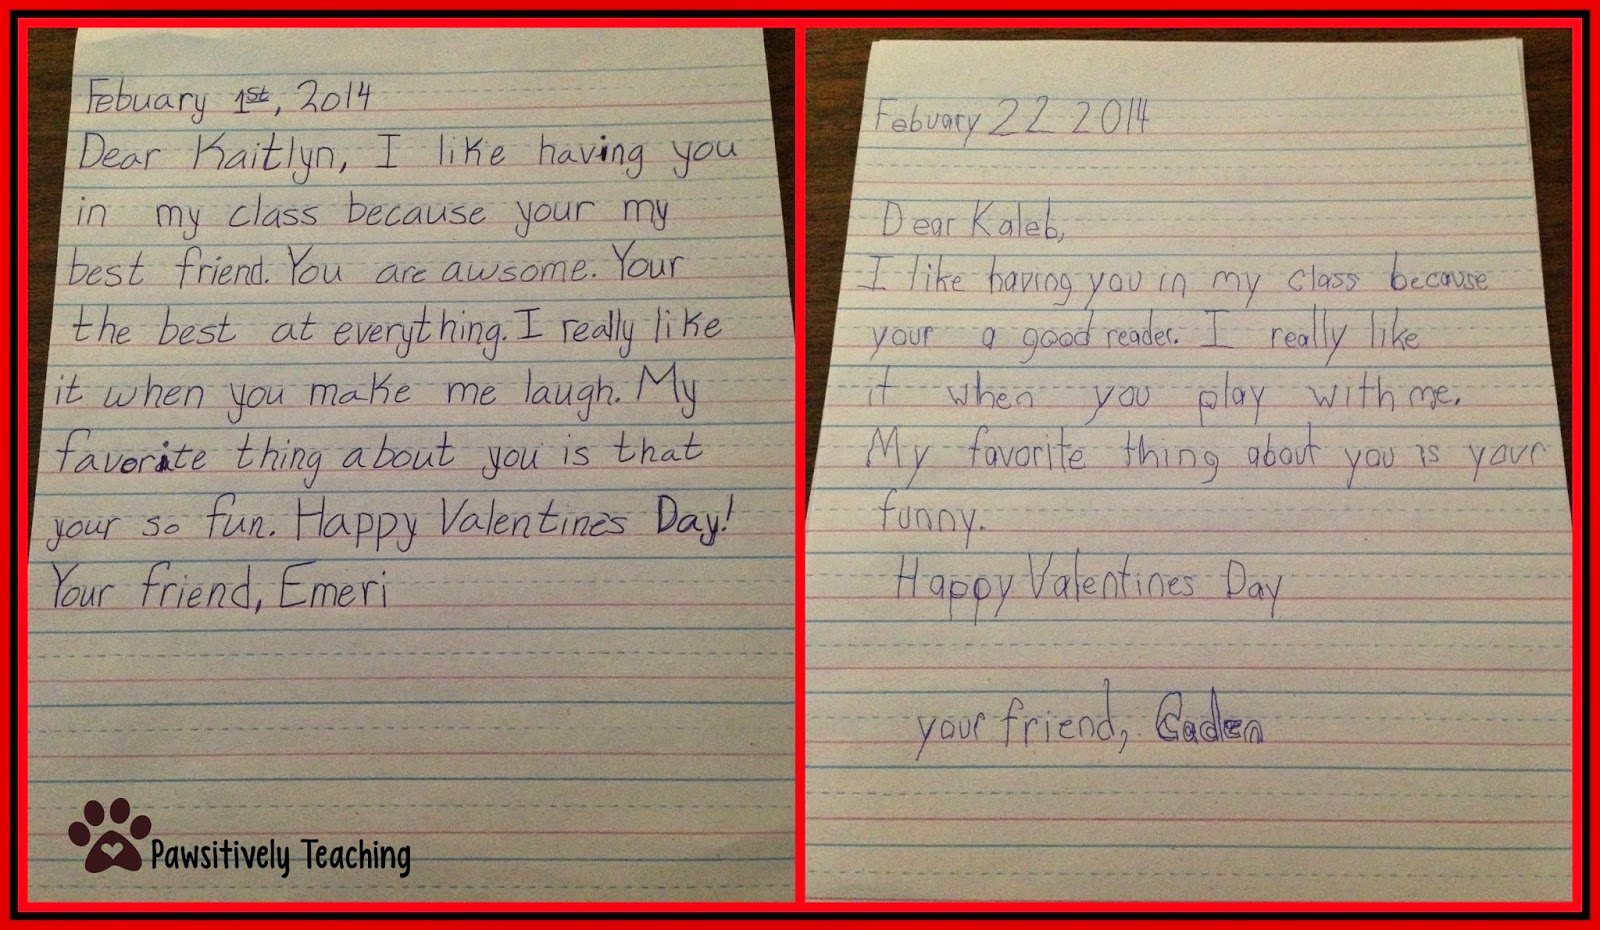 Friendly Letter Format Elementary School.  Who s and New Building Friendships on Valentines Day